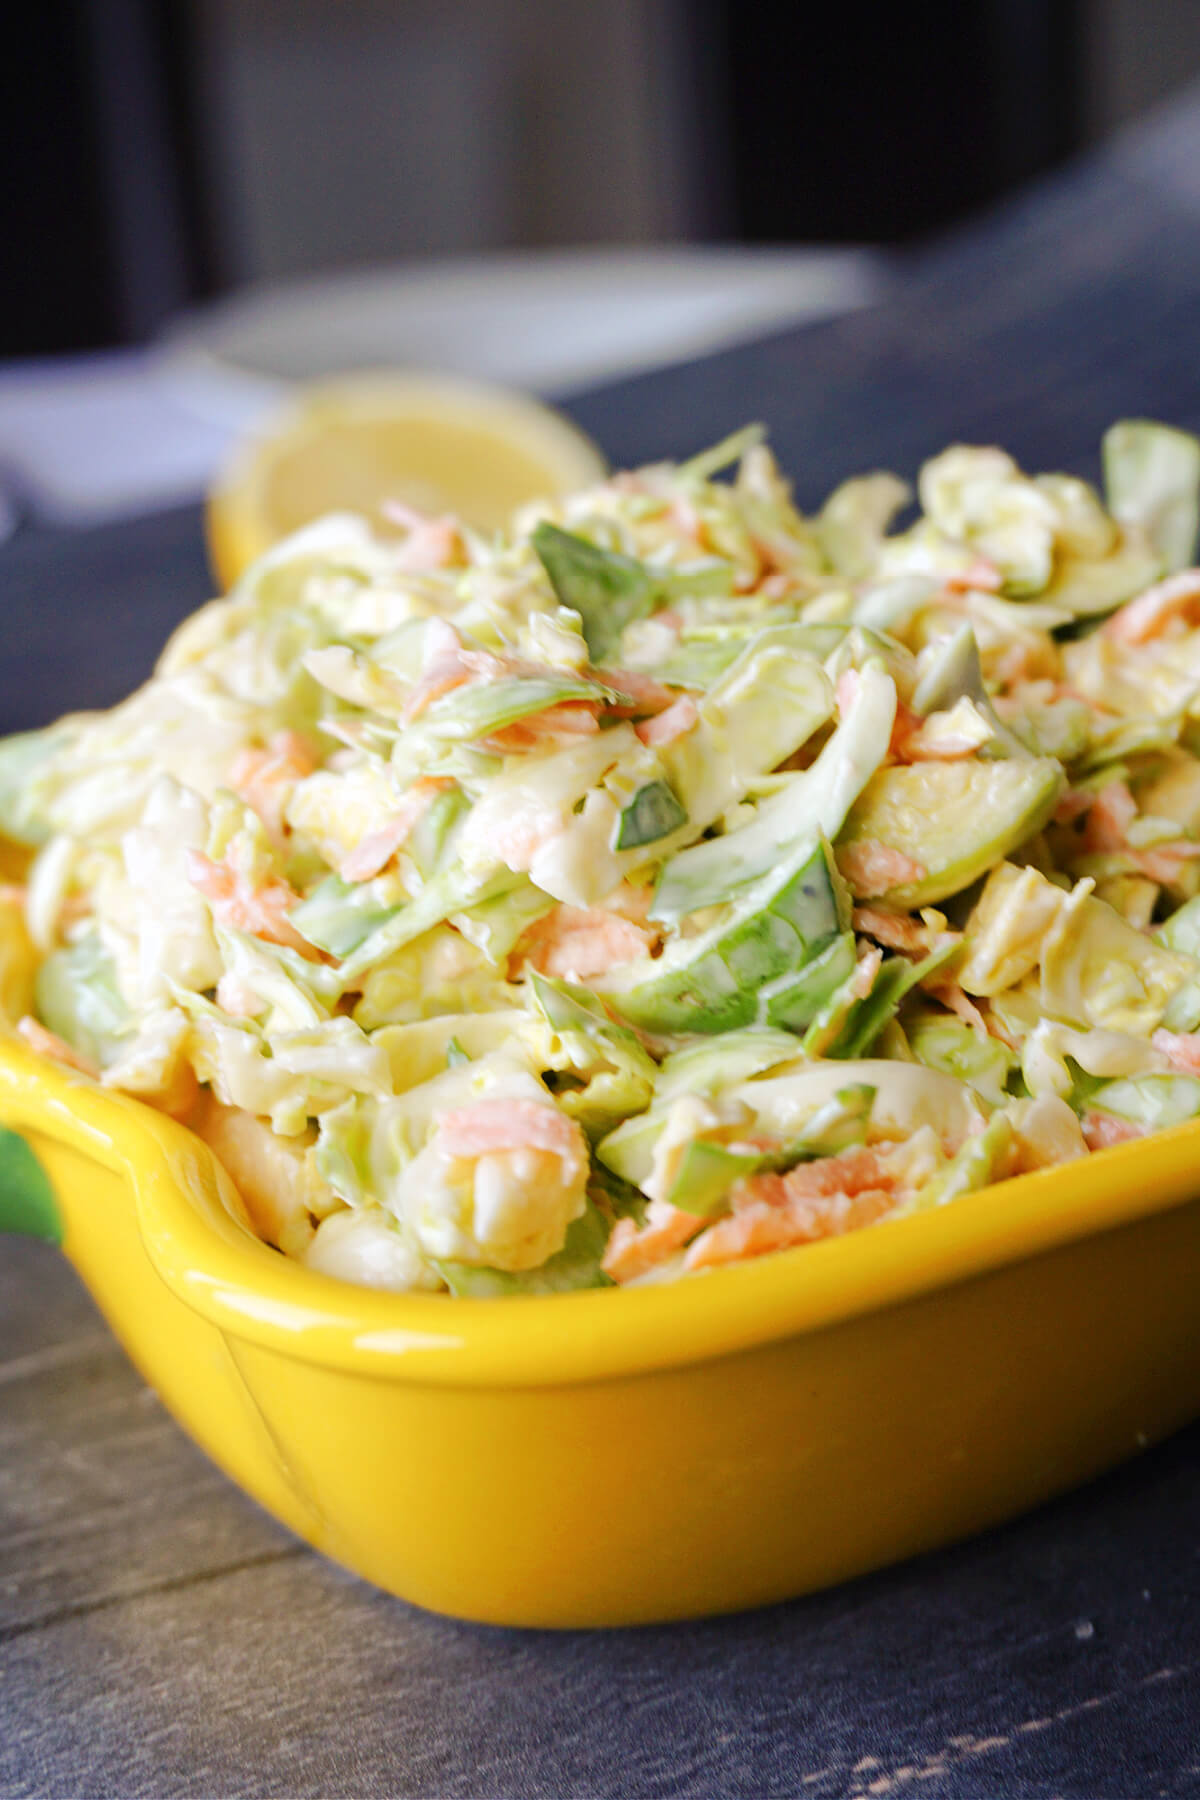 Close-up shoot of a yellow dish with brussel sprout slaw